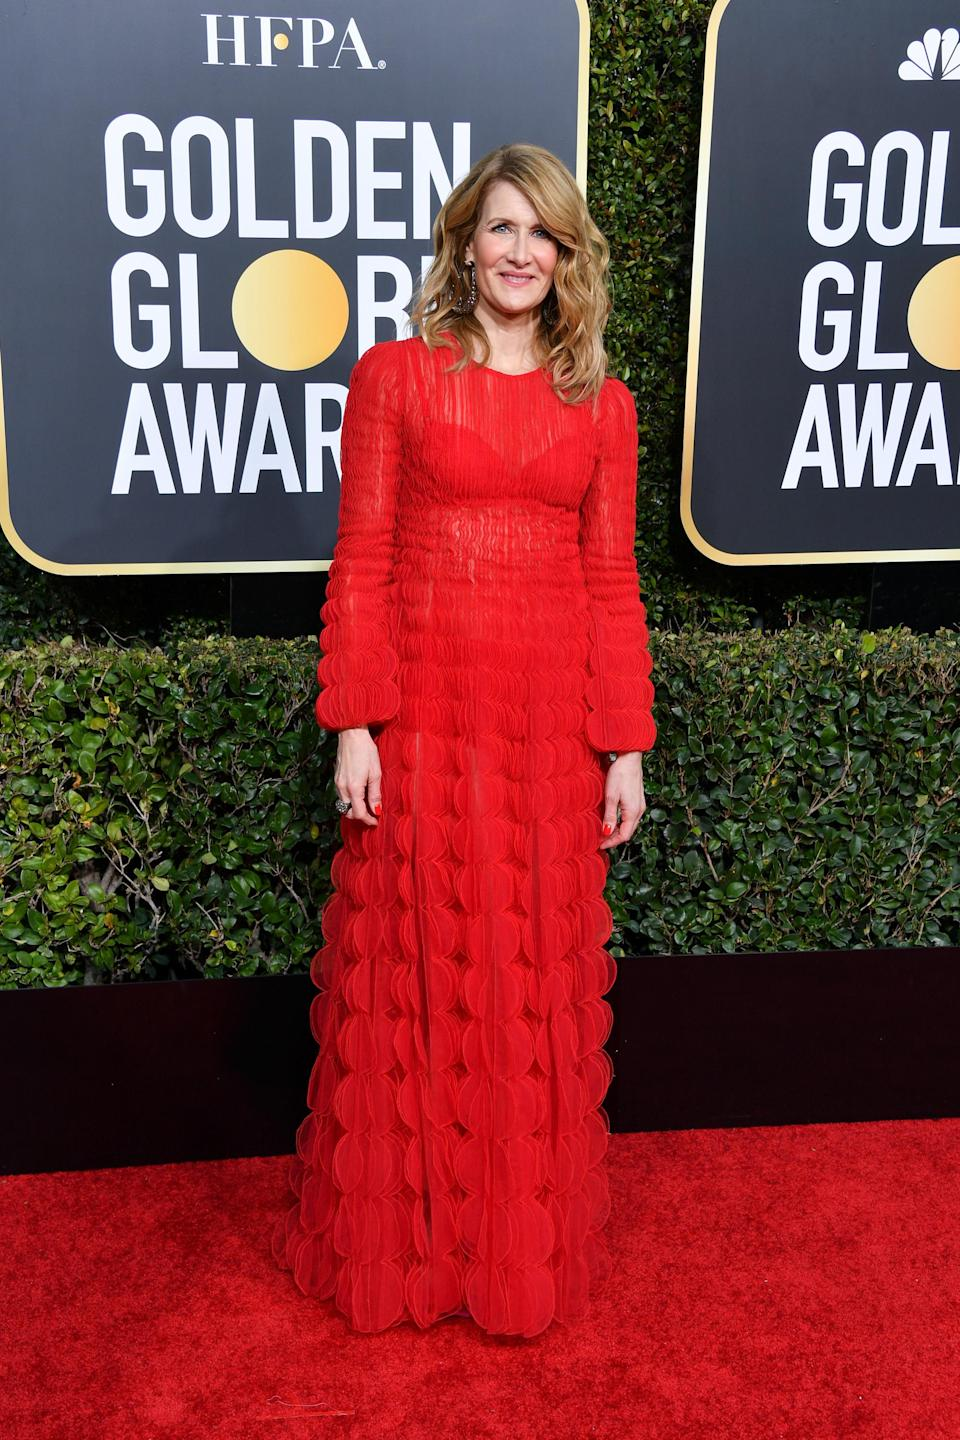 <p>The 51-year-old star looked elegant in a vibrant red look by Valentino.<br>Image via Getty Images. </p>